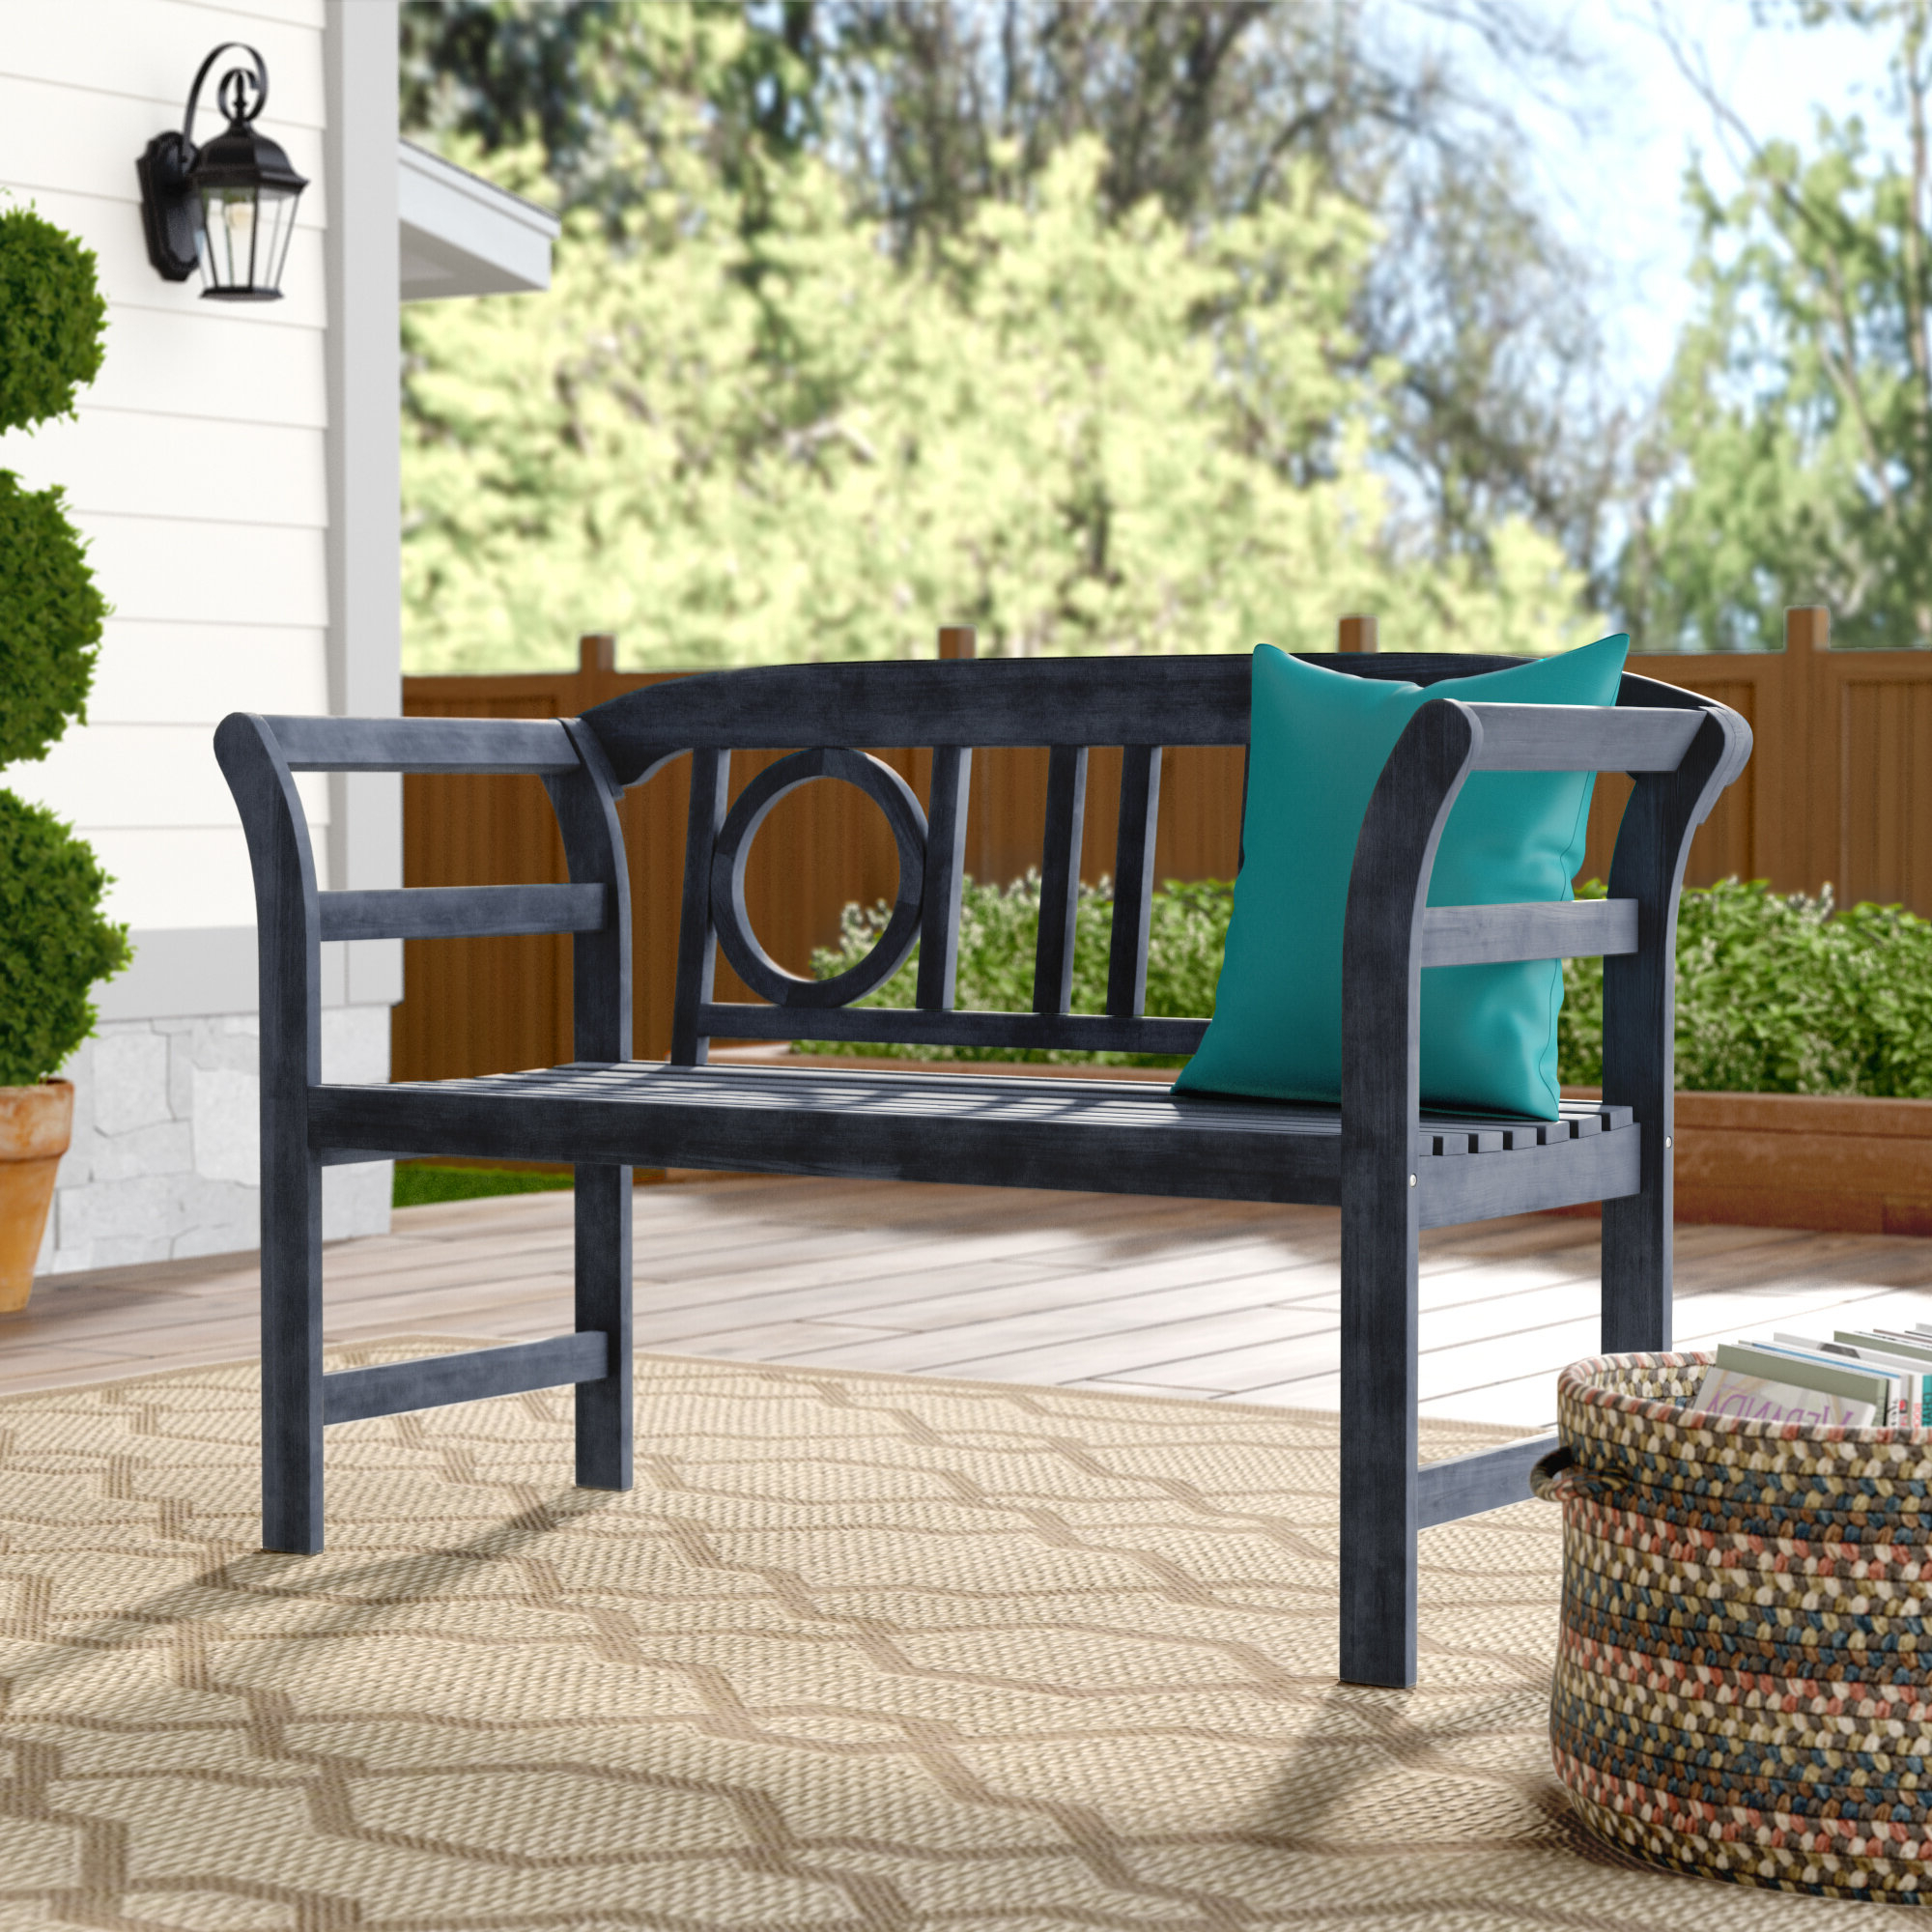 Guyapi Garden Benches In Widely Used Brinwood 2 Seat Wooden Garden Bench (View 16 of 30)